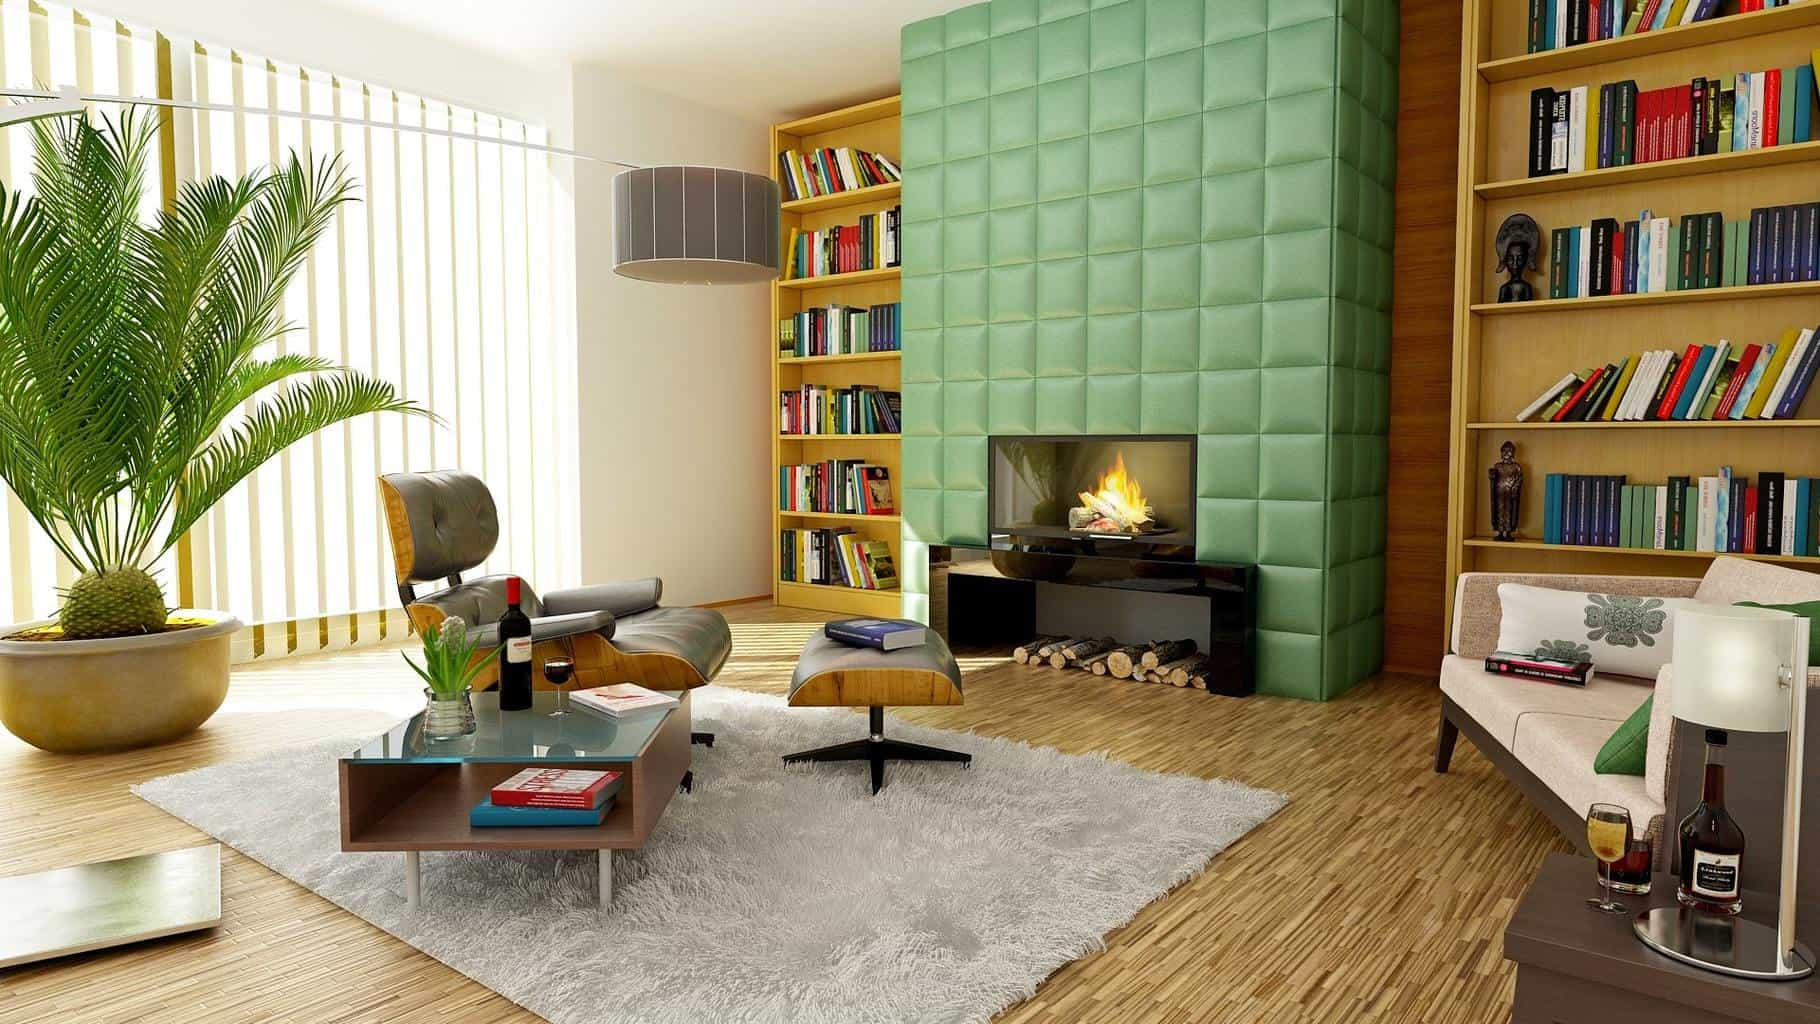 A living room filled with books and colored walls with a recliner and a fireplace